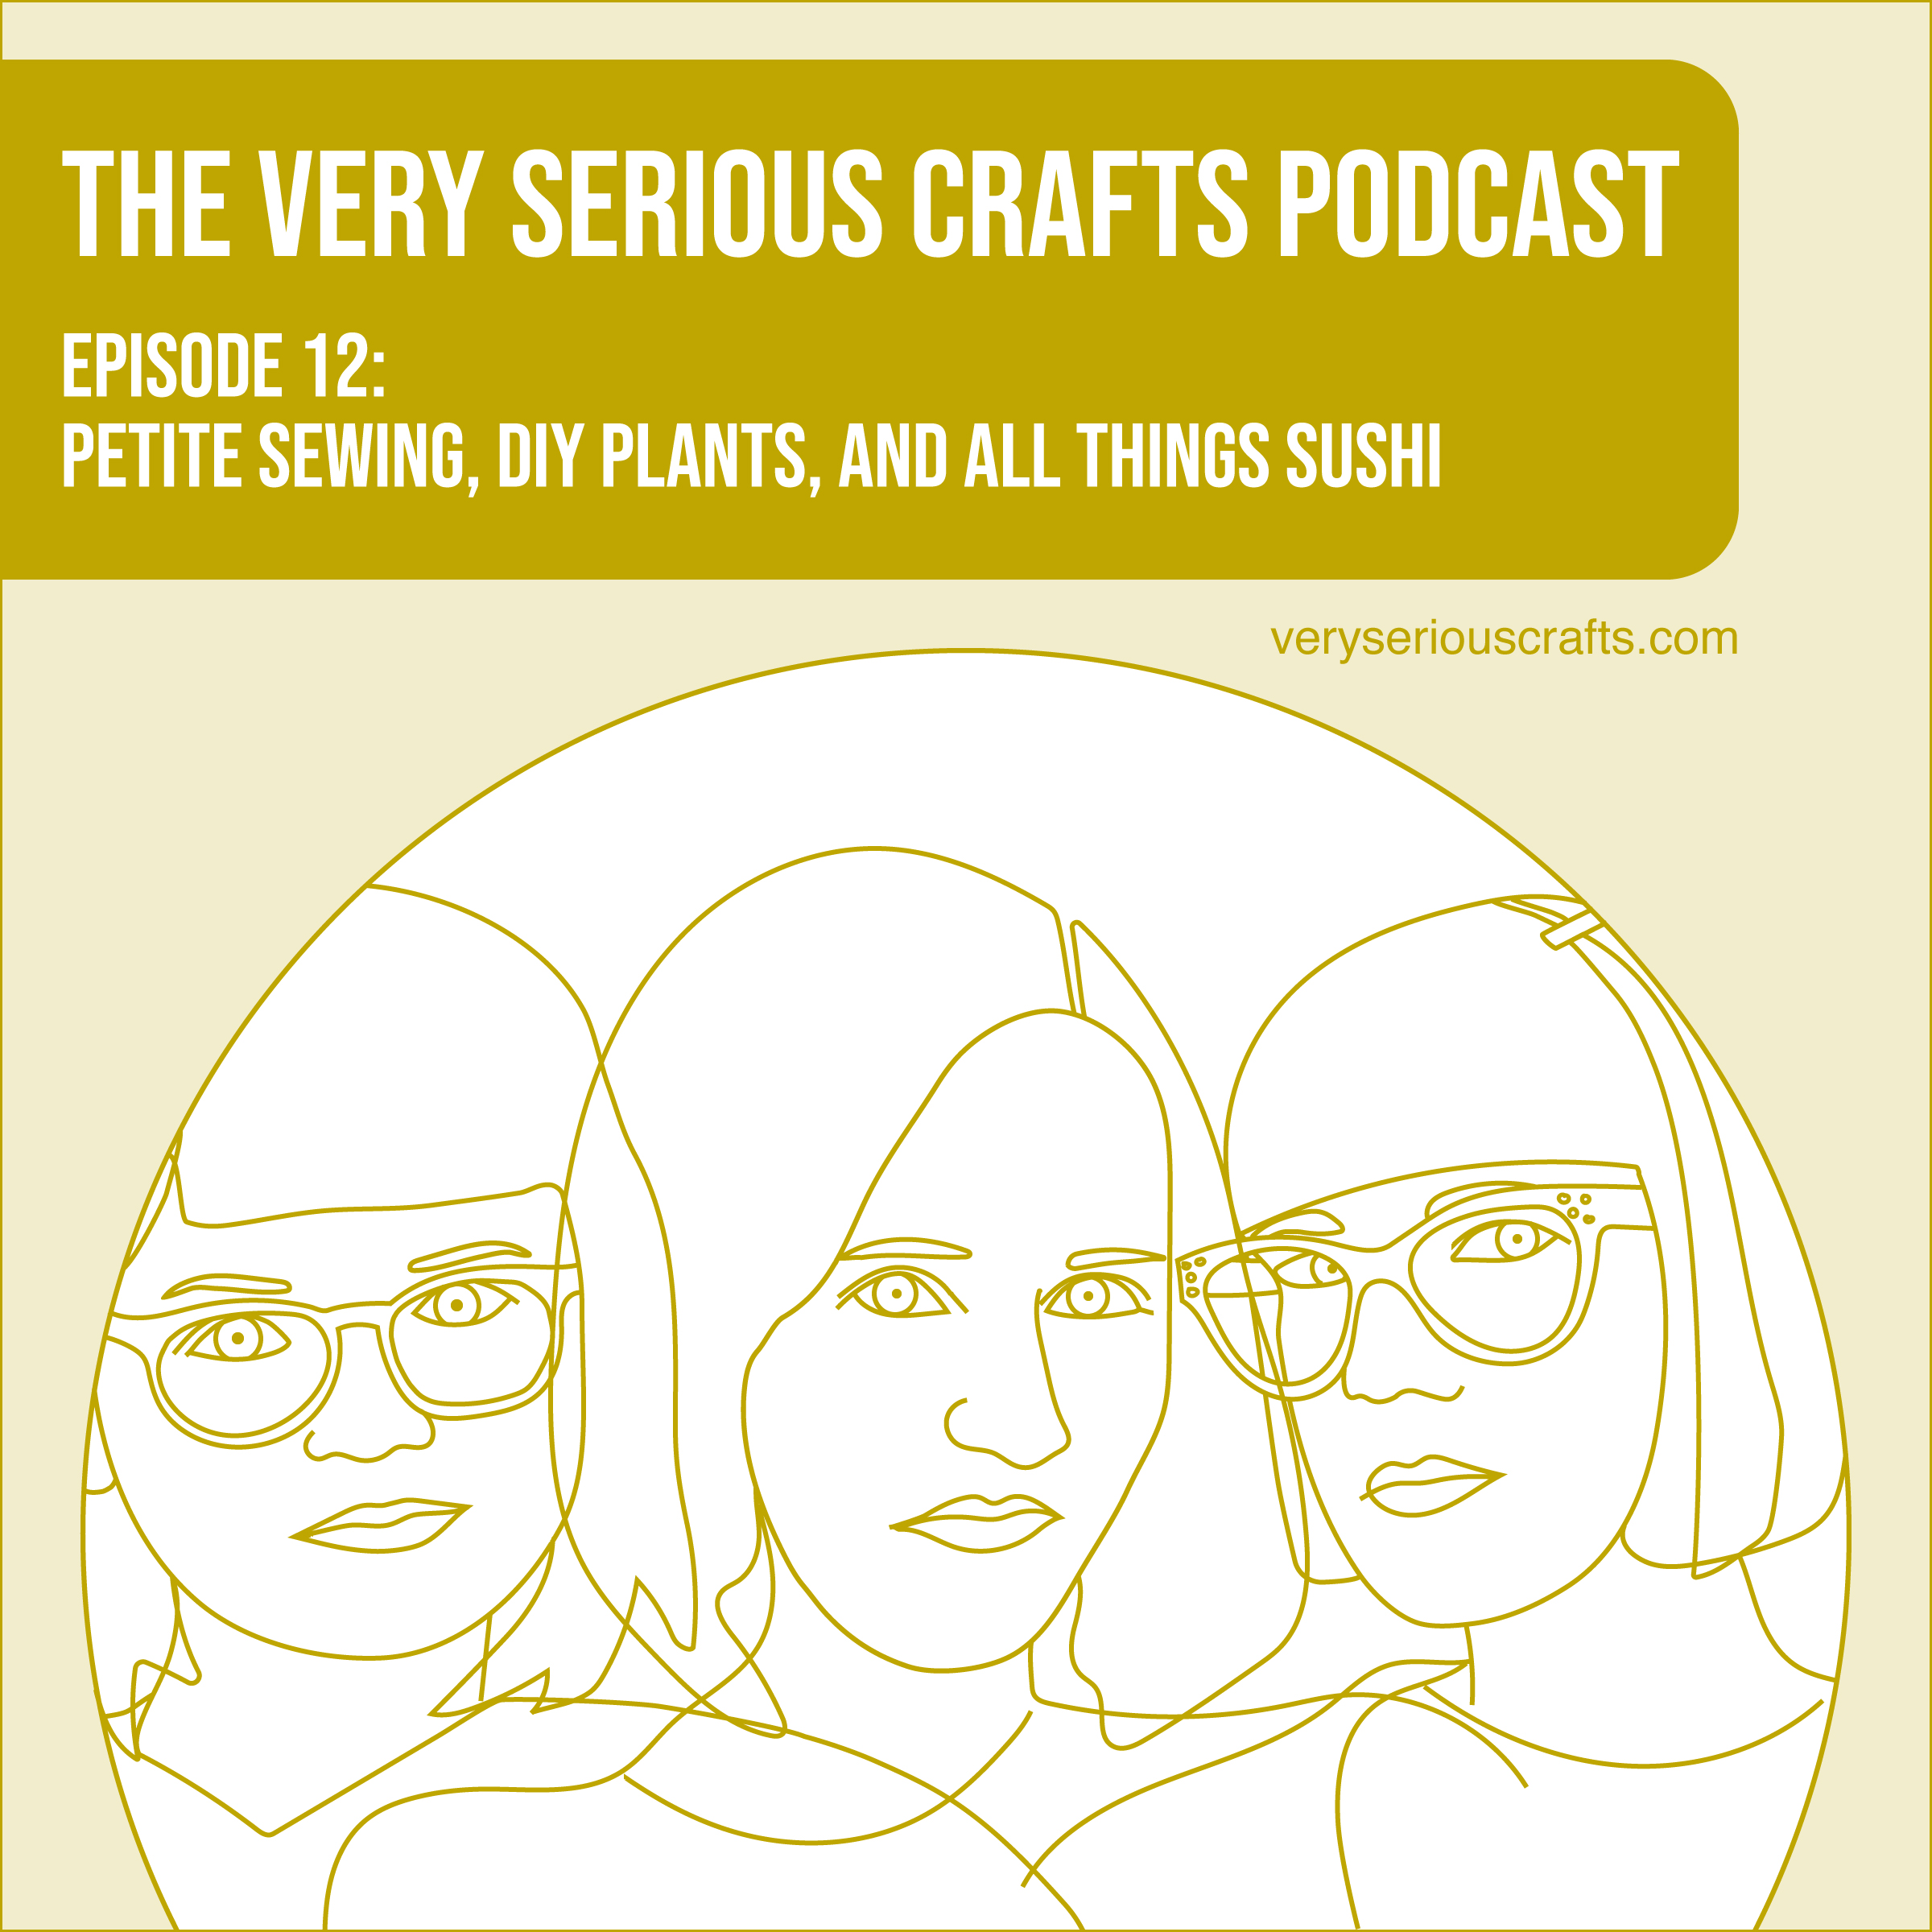 S1E12: Petite Sewing, DIY Plants, and All Things Sushi